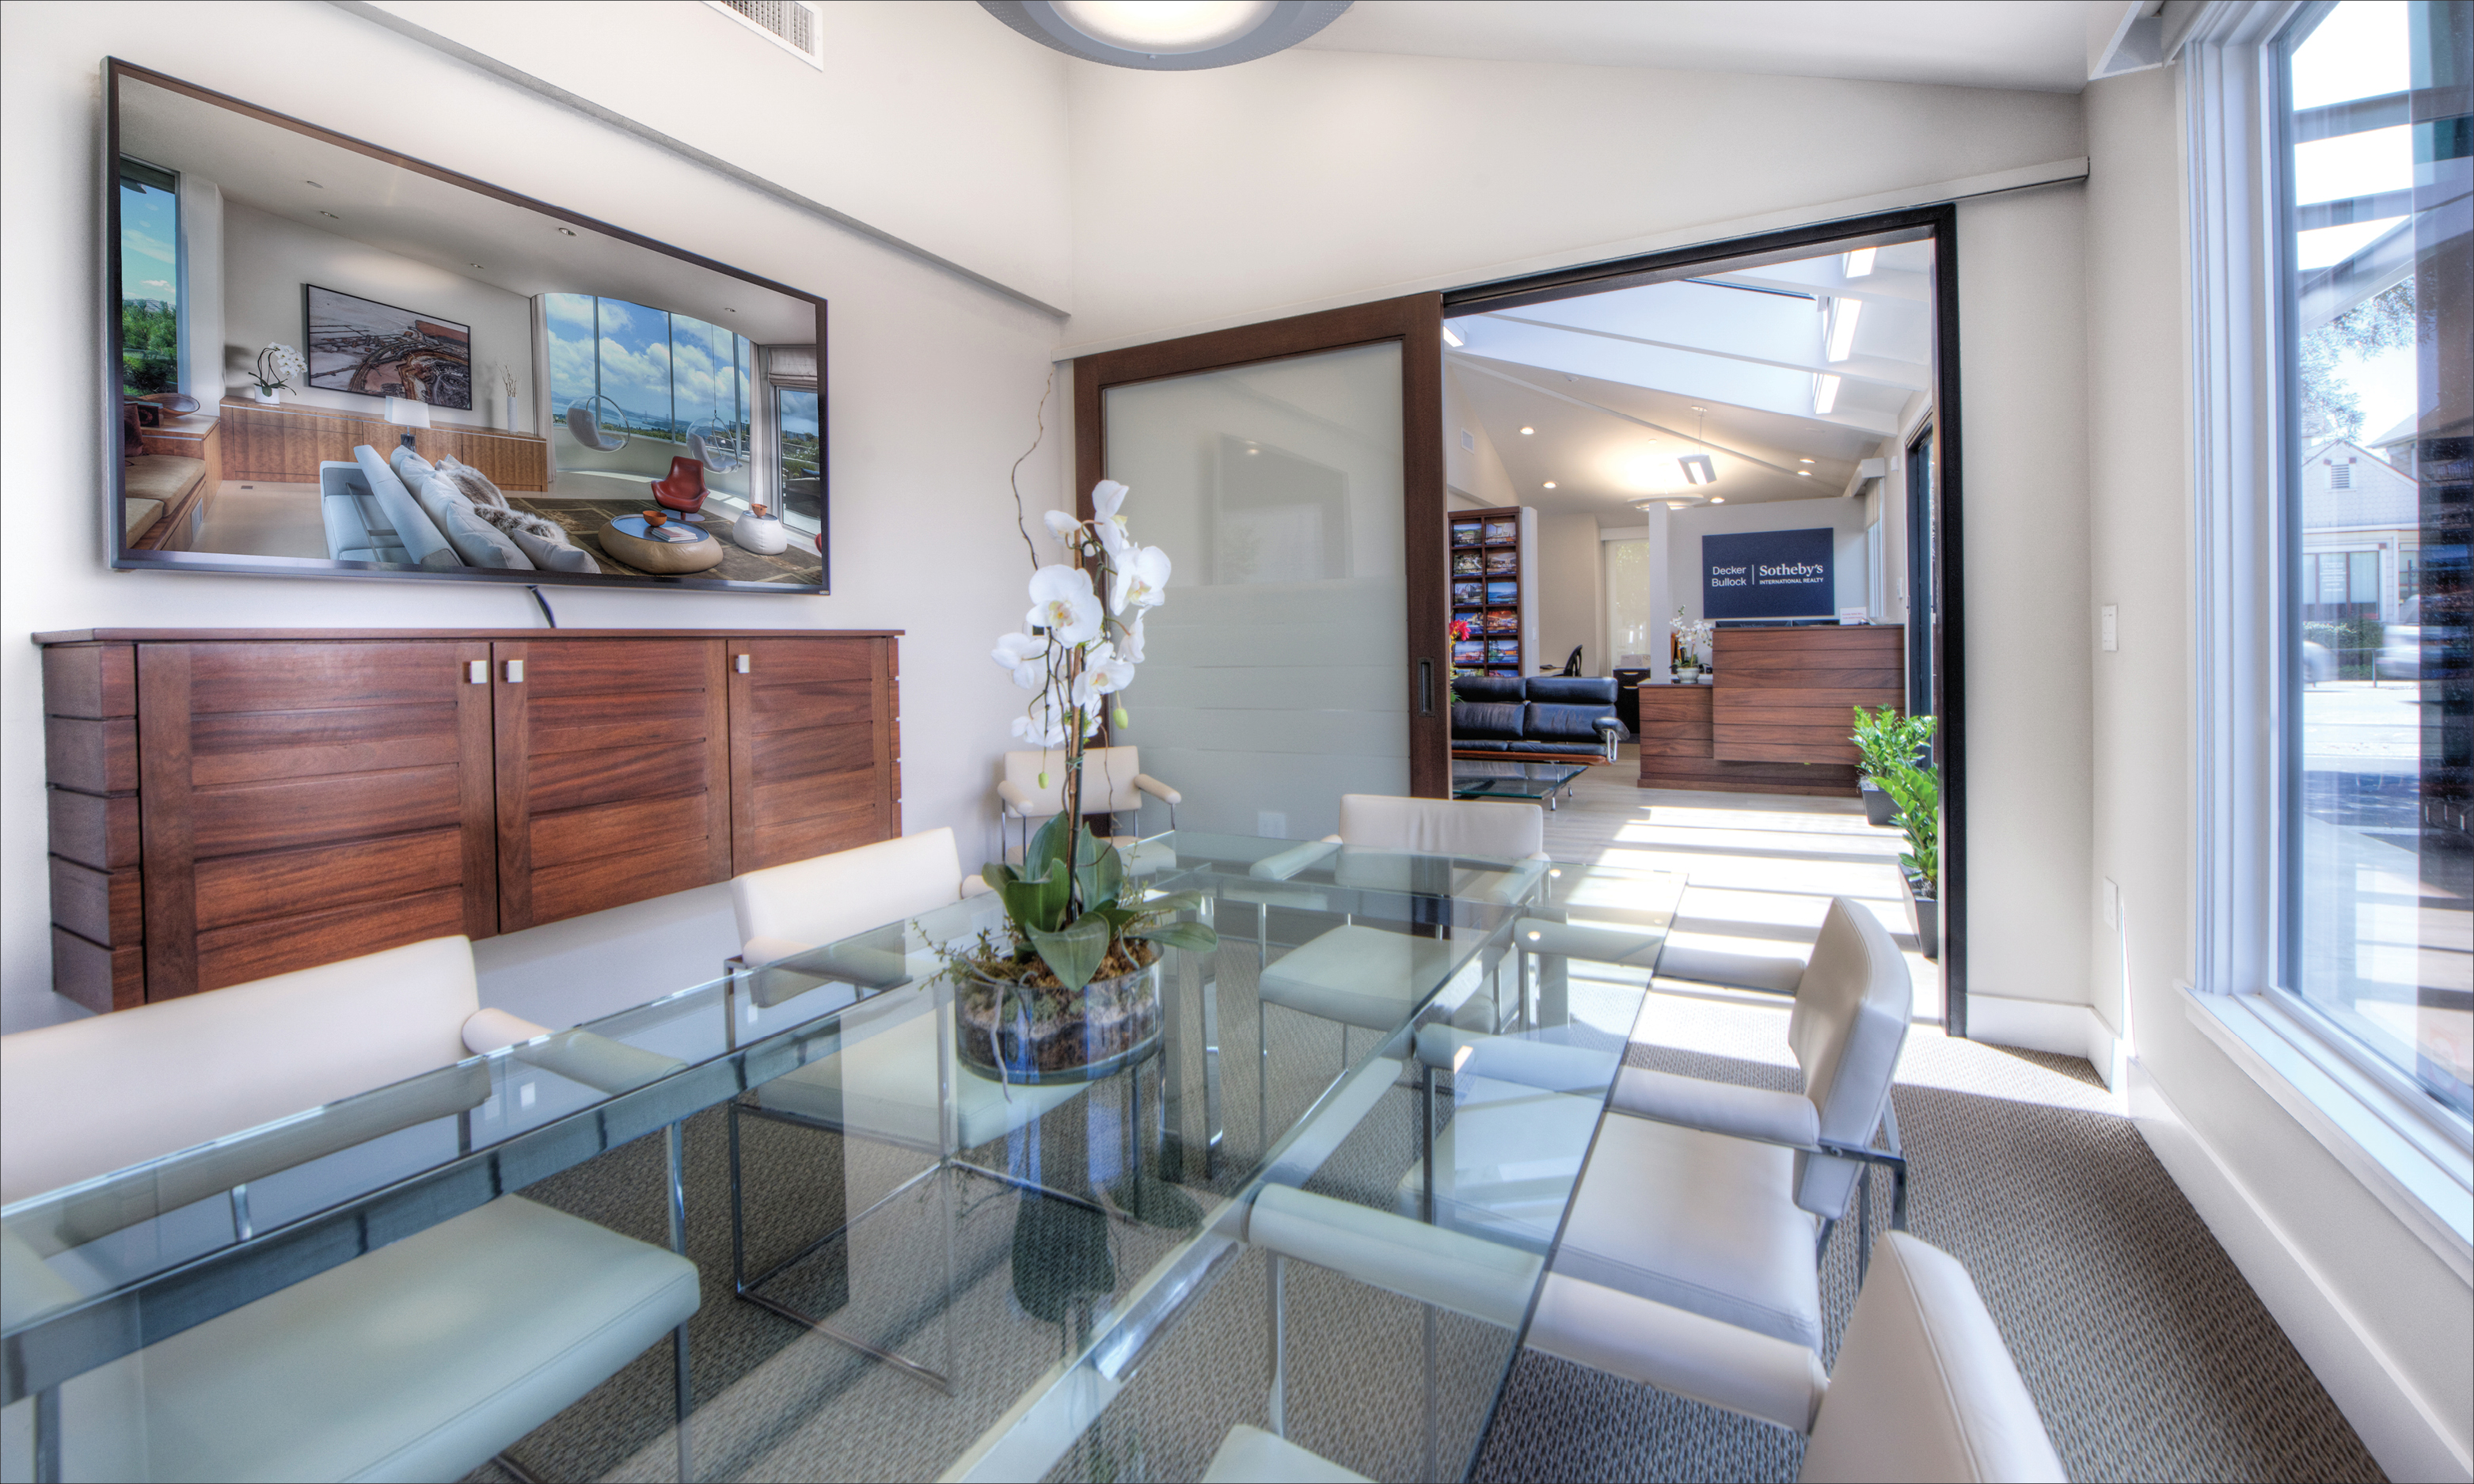 New Digs on the Block: Brokerage Launches Sleek Designer Office